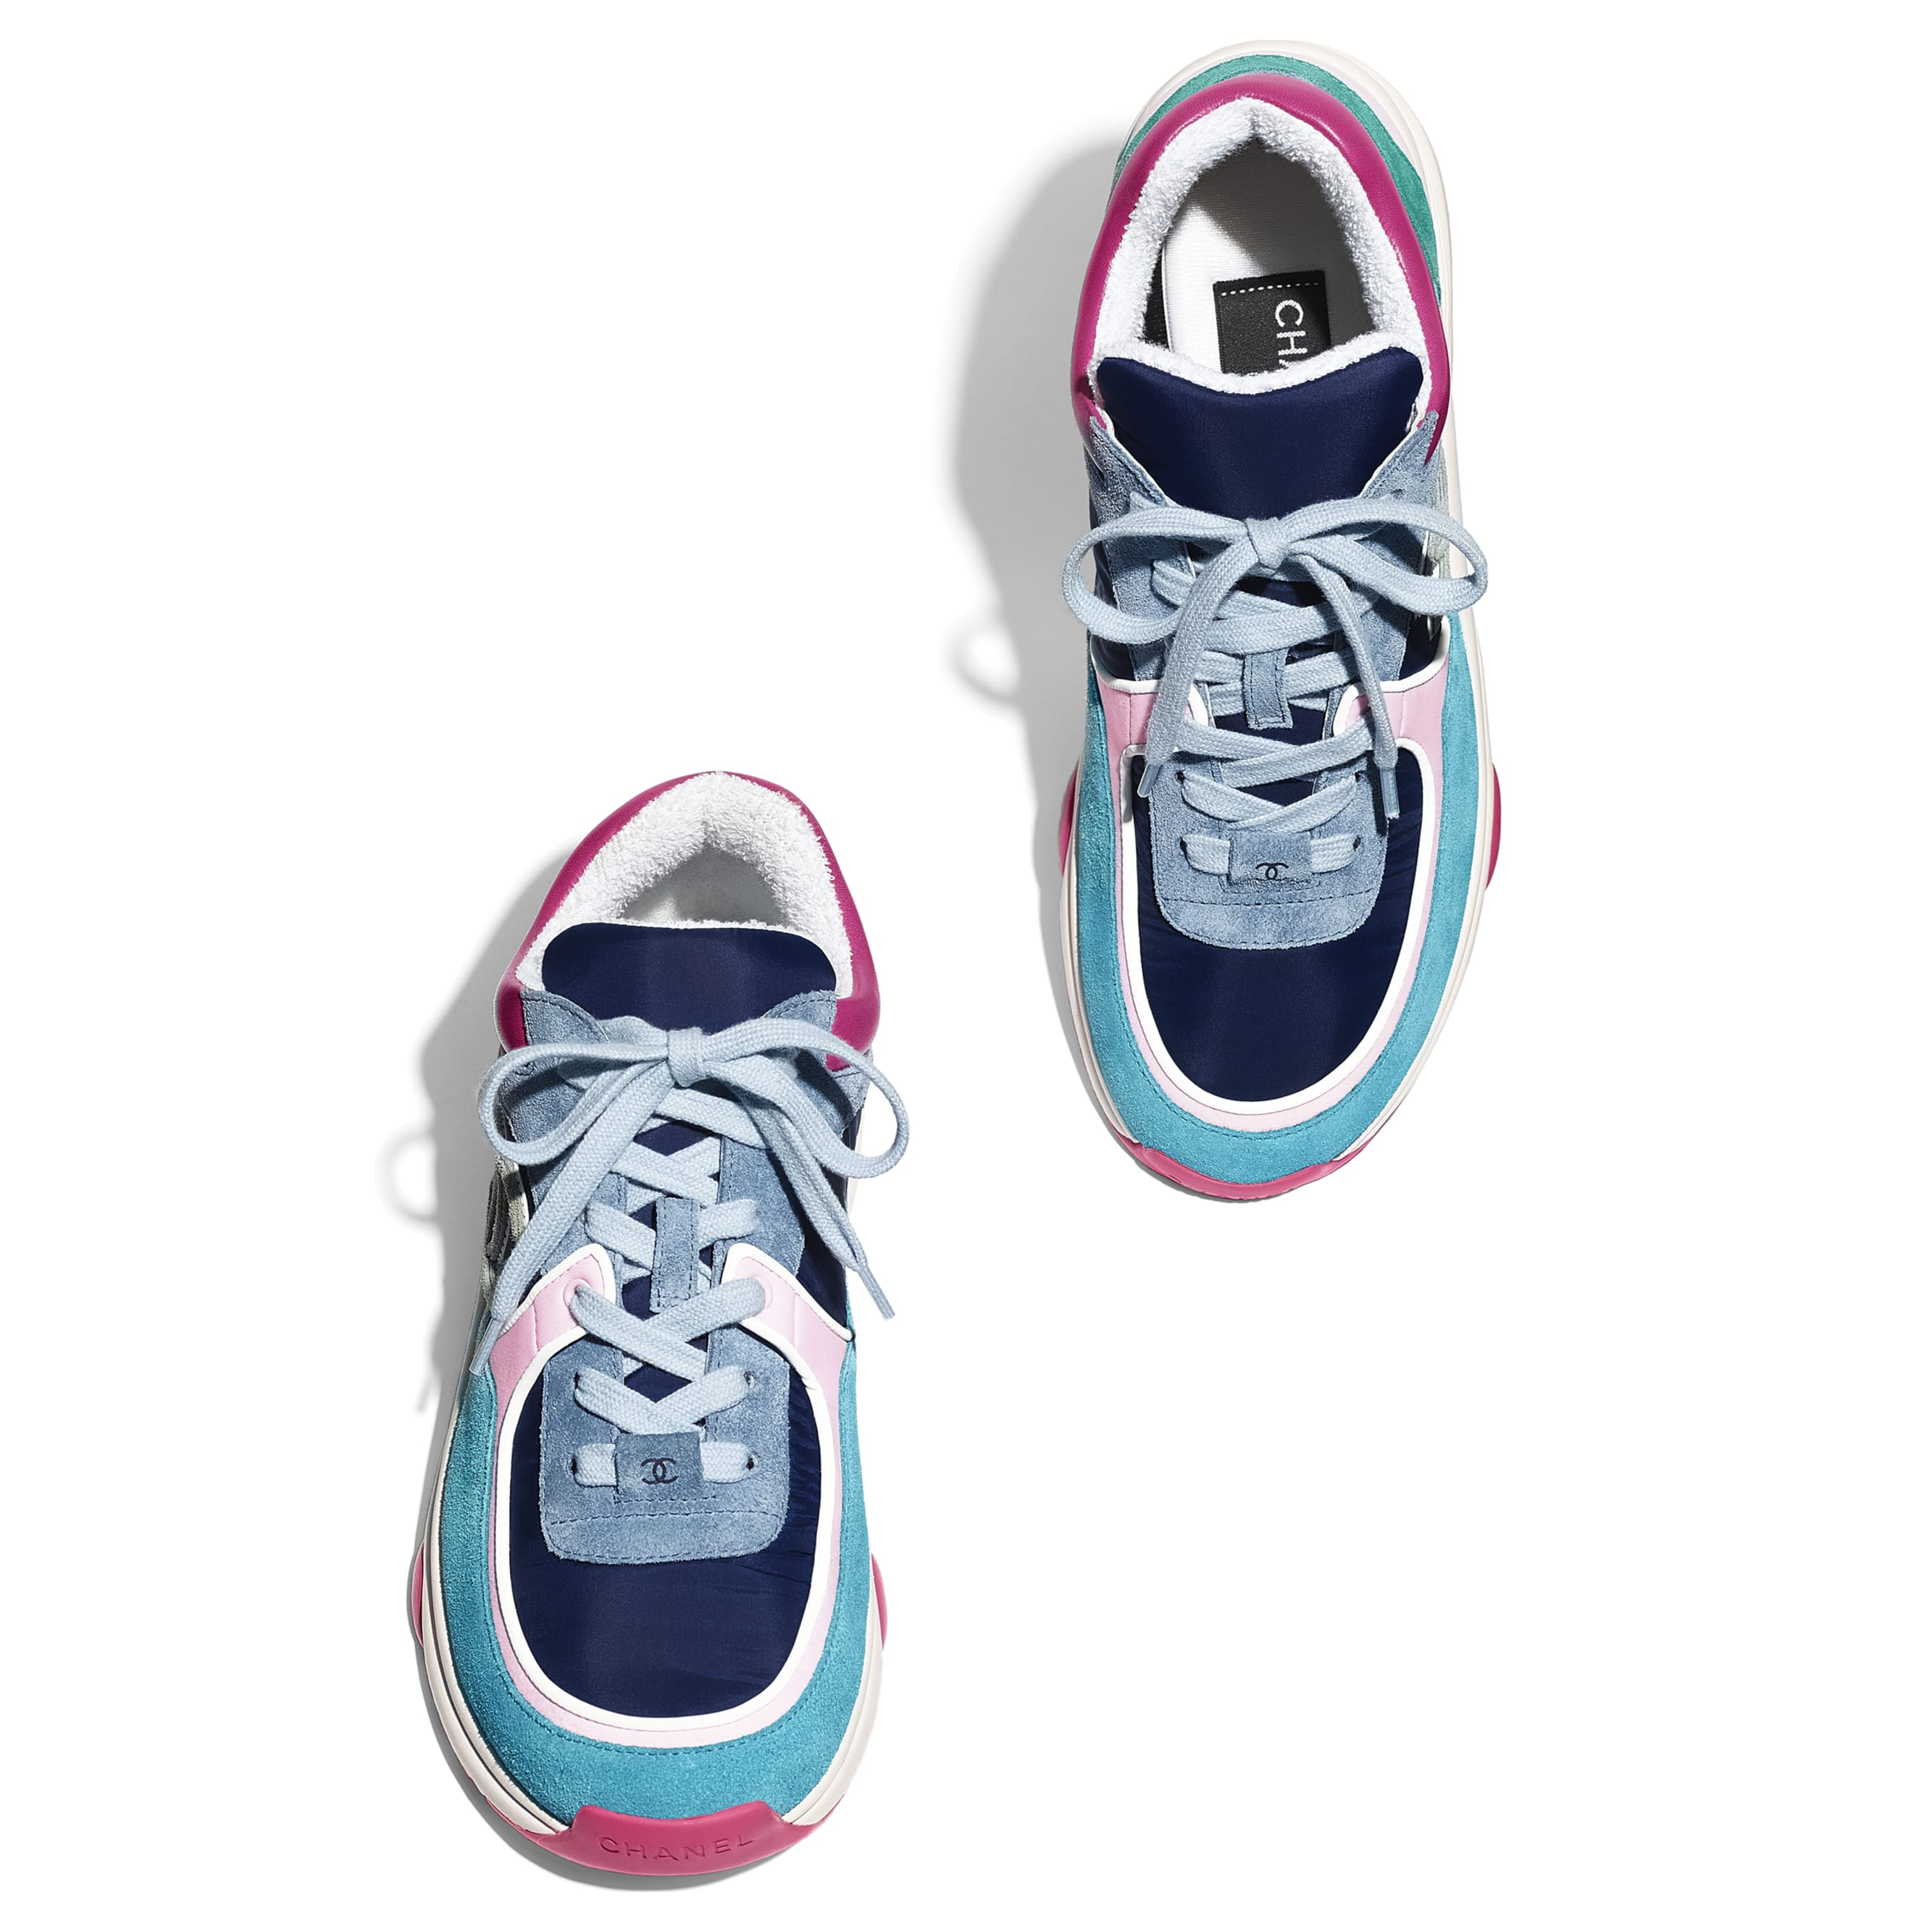 Sneakers - Blue, Pink & Turquoise - Velvet Calfskin & Mixed Fibers - CHANEL - Extra view - see standard sized version